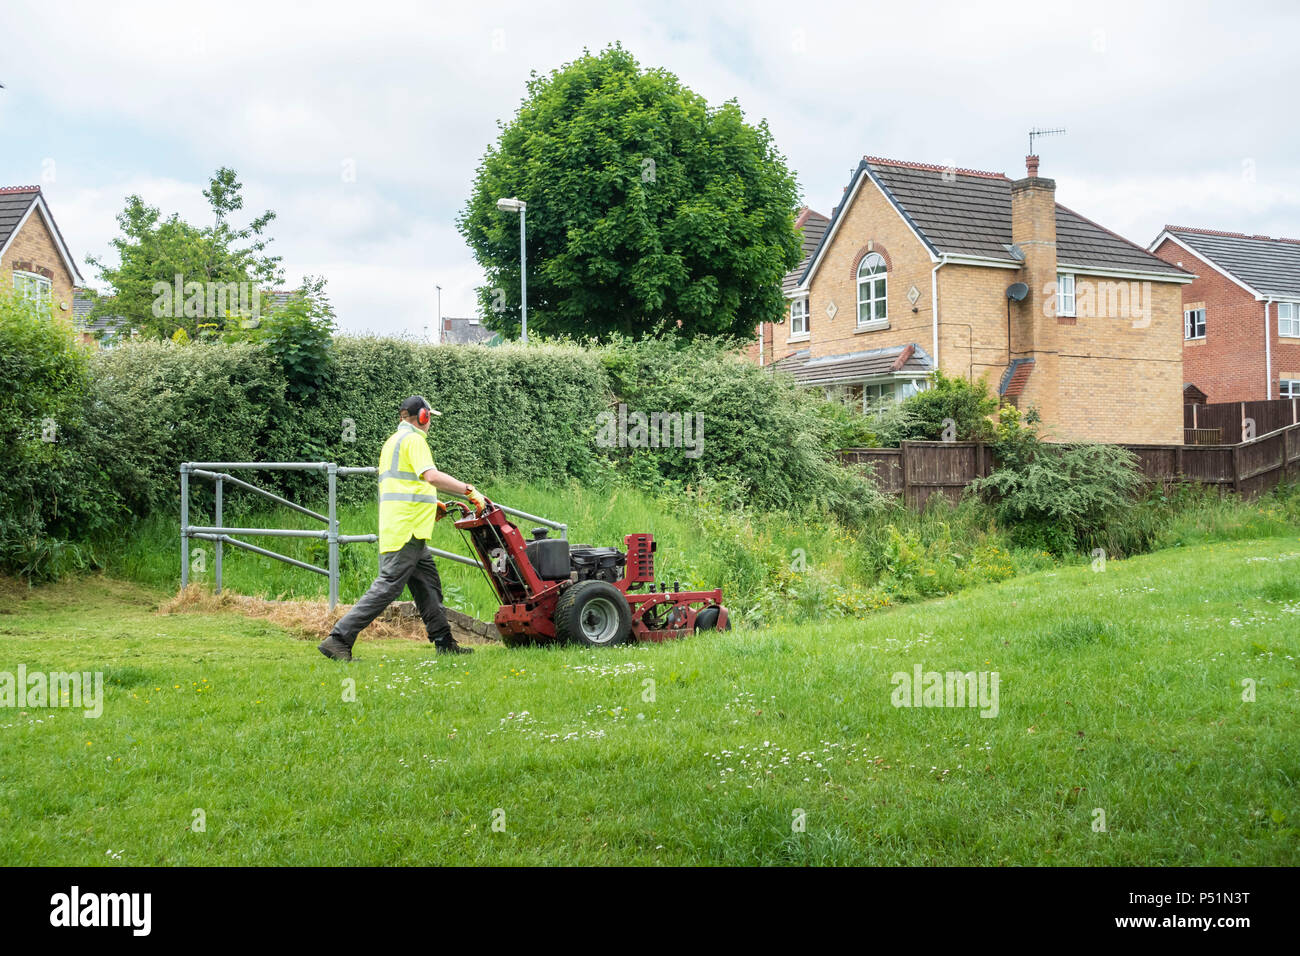 Gardener wearing Hi-Vis jacket mowing grass on a housing estate. - Stock Image